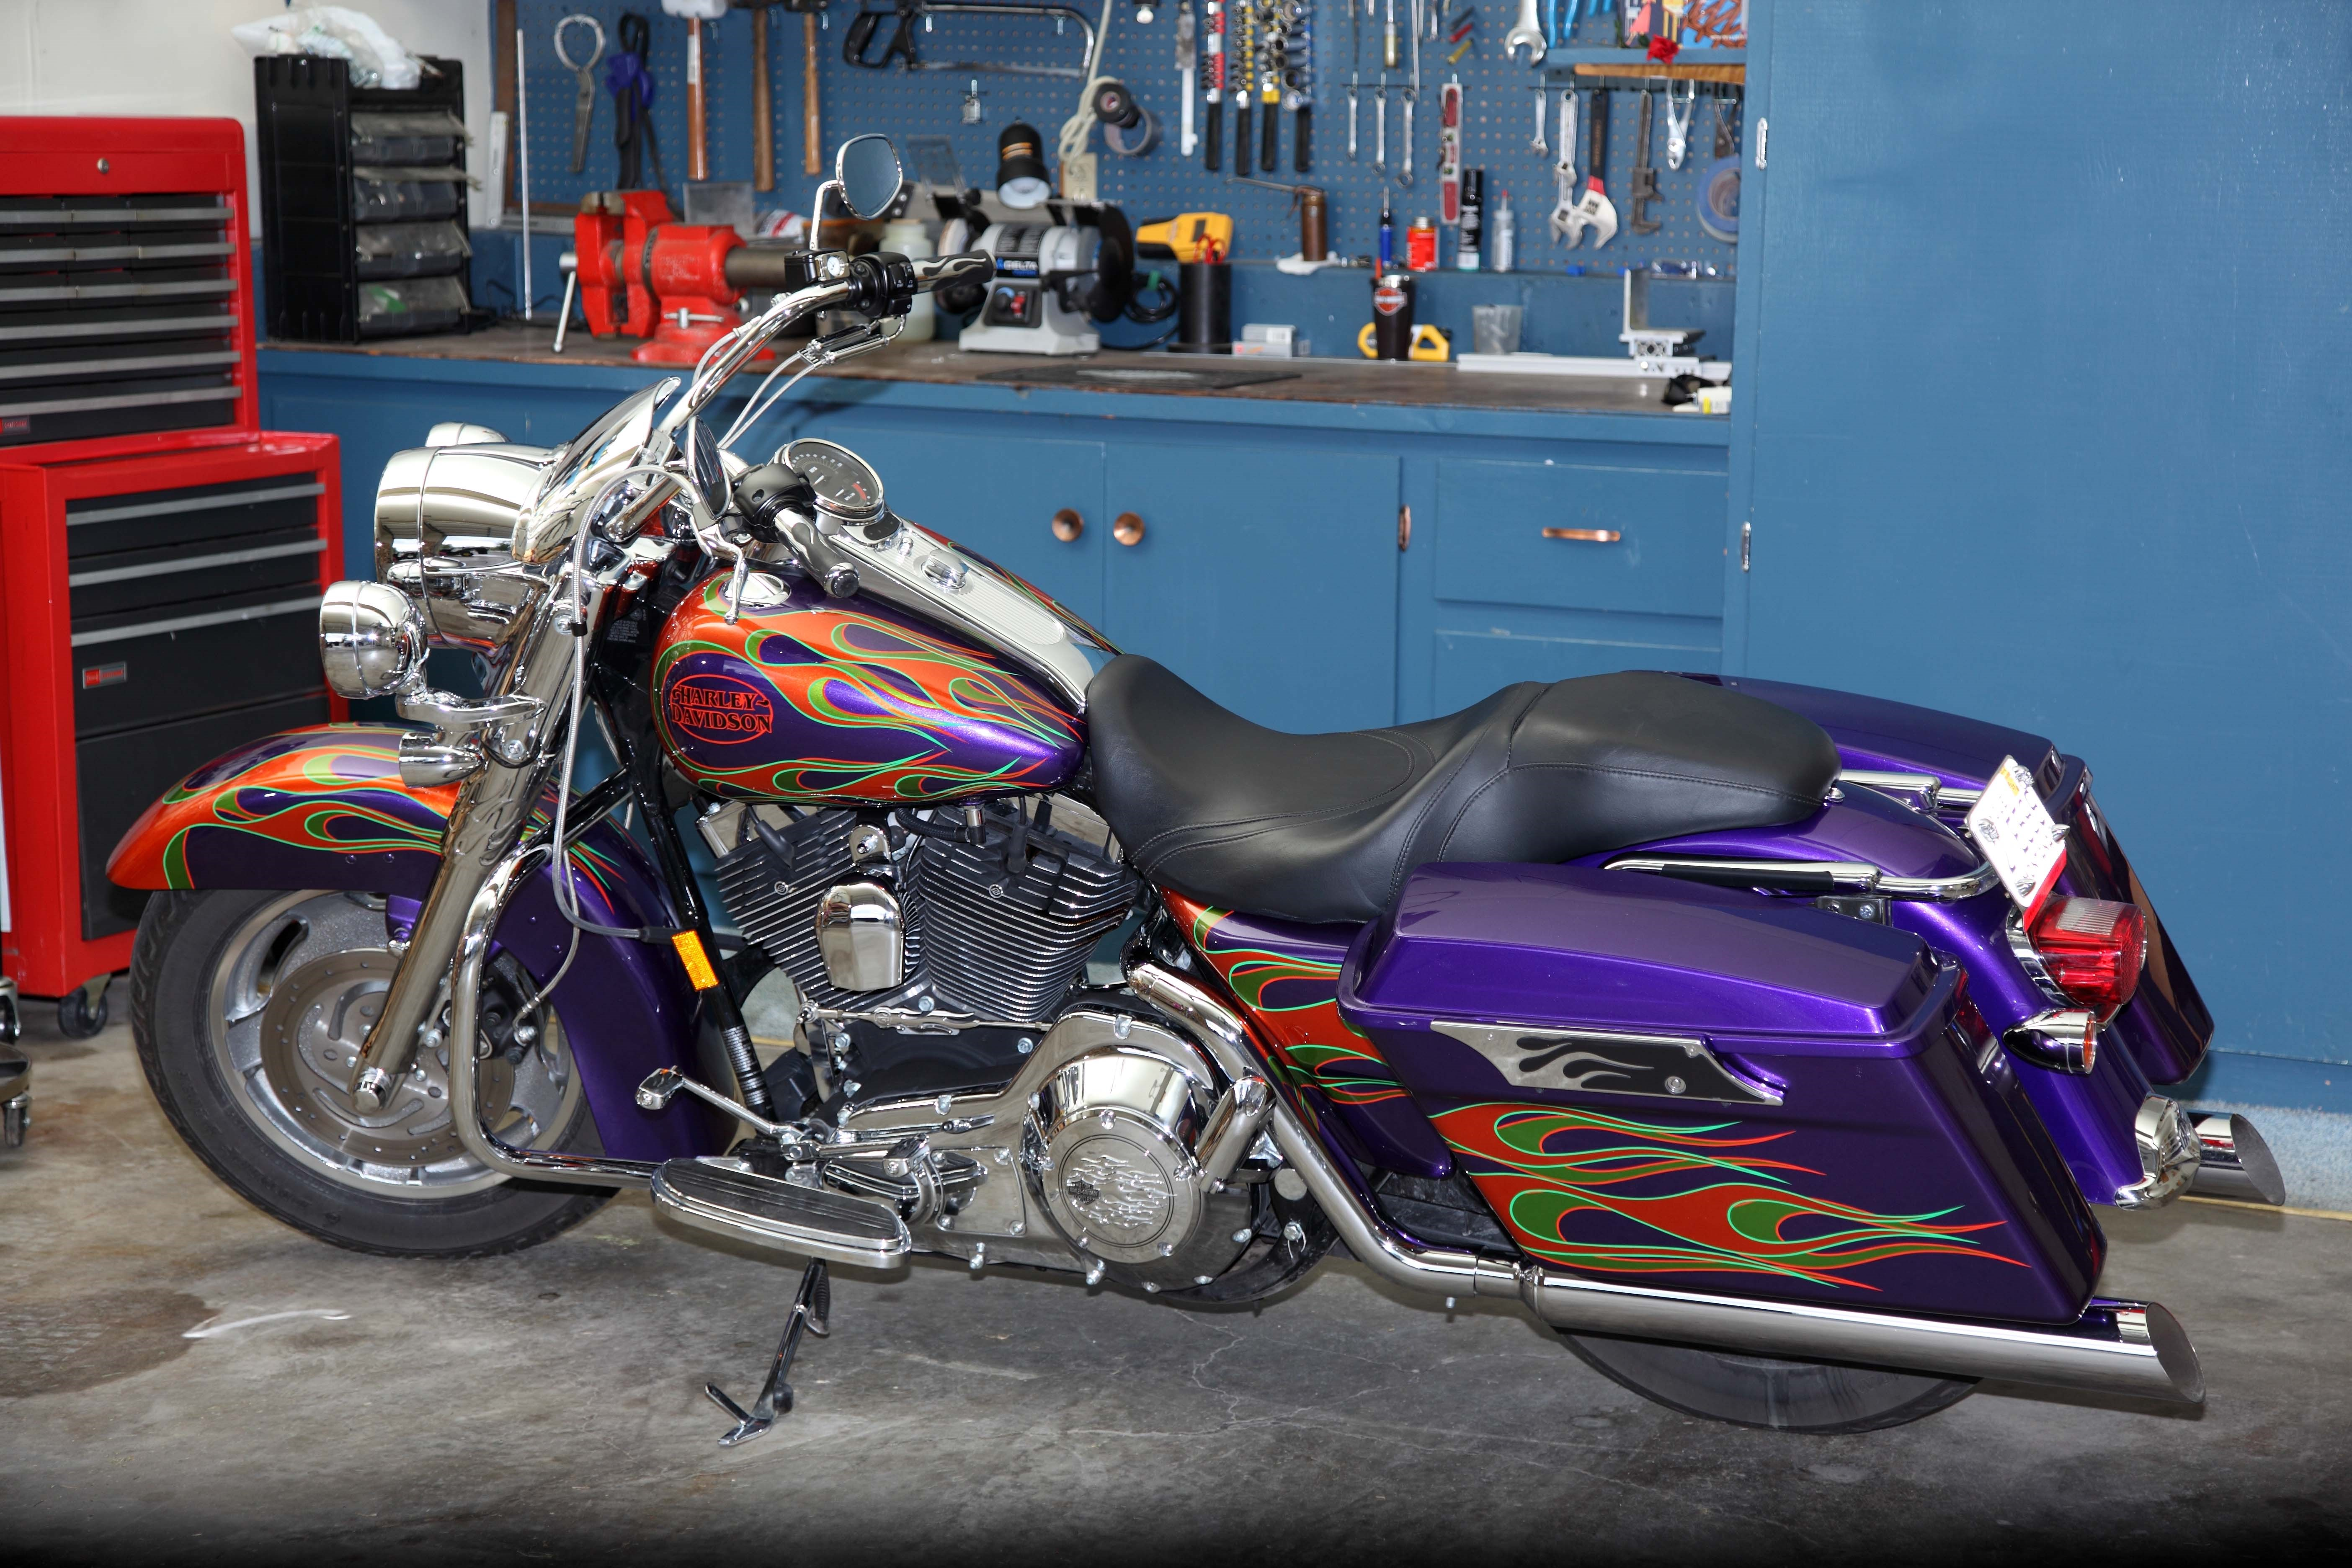 Harley Davidson Road King Wiring Diagram For 2012 Trusted 2009 Schematic Cvo U2022 Free Handlebar